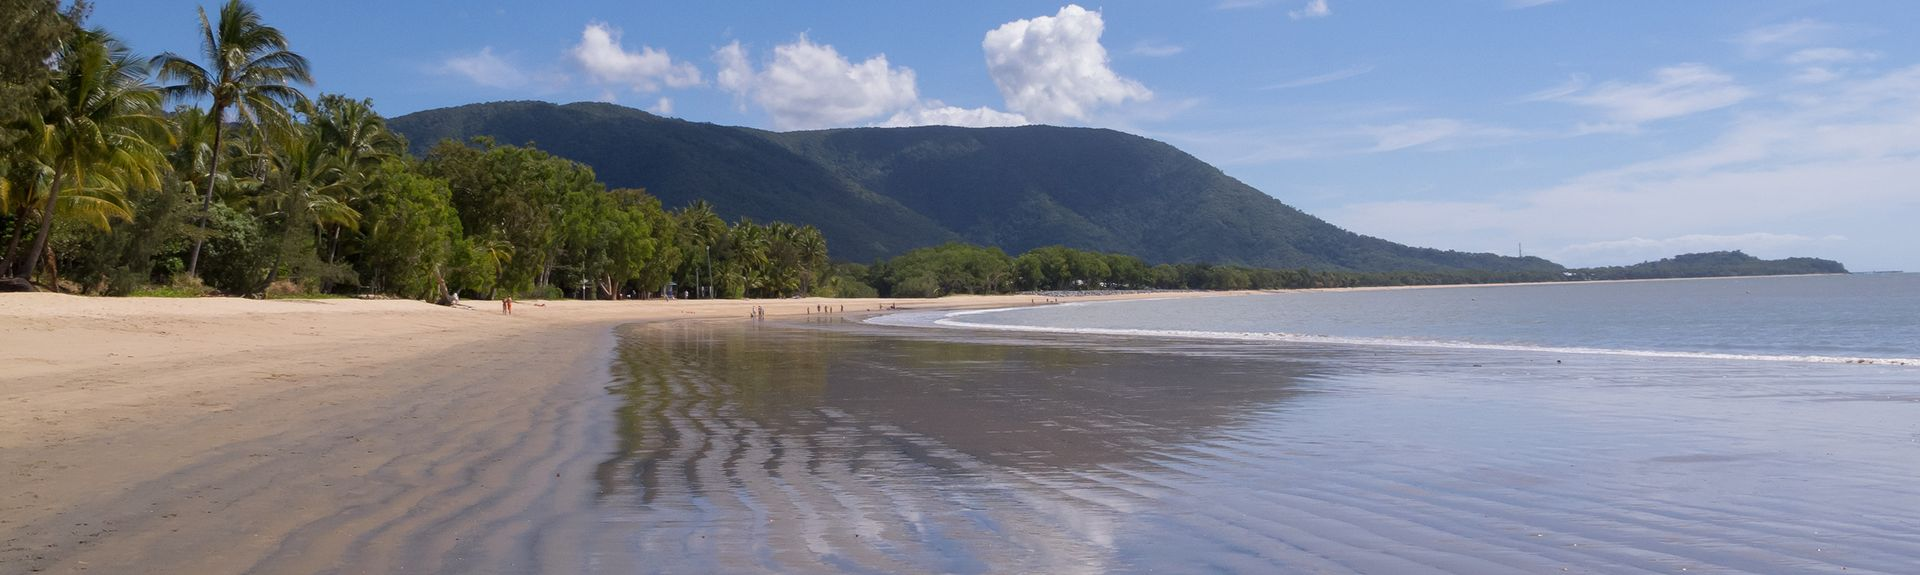 Trinity Beach, Cairns, Cairns, Queensland, Australia